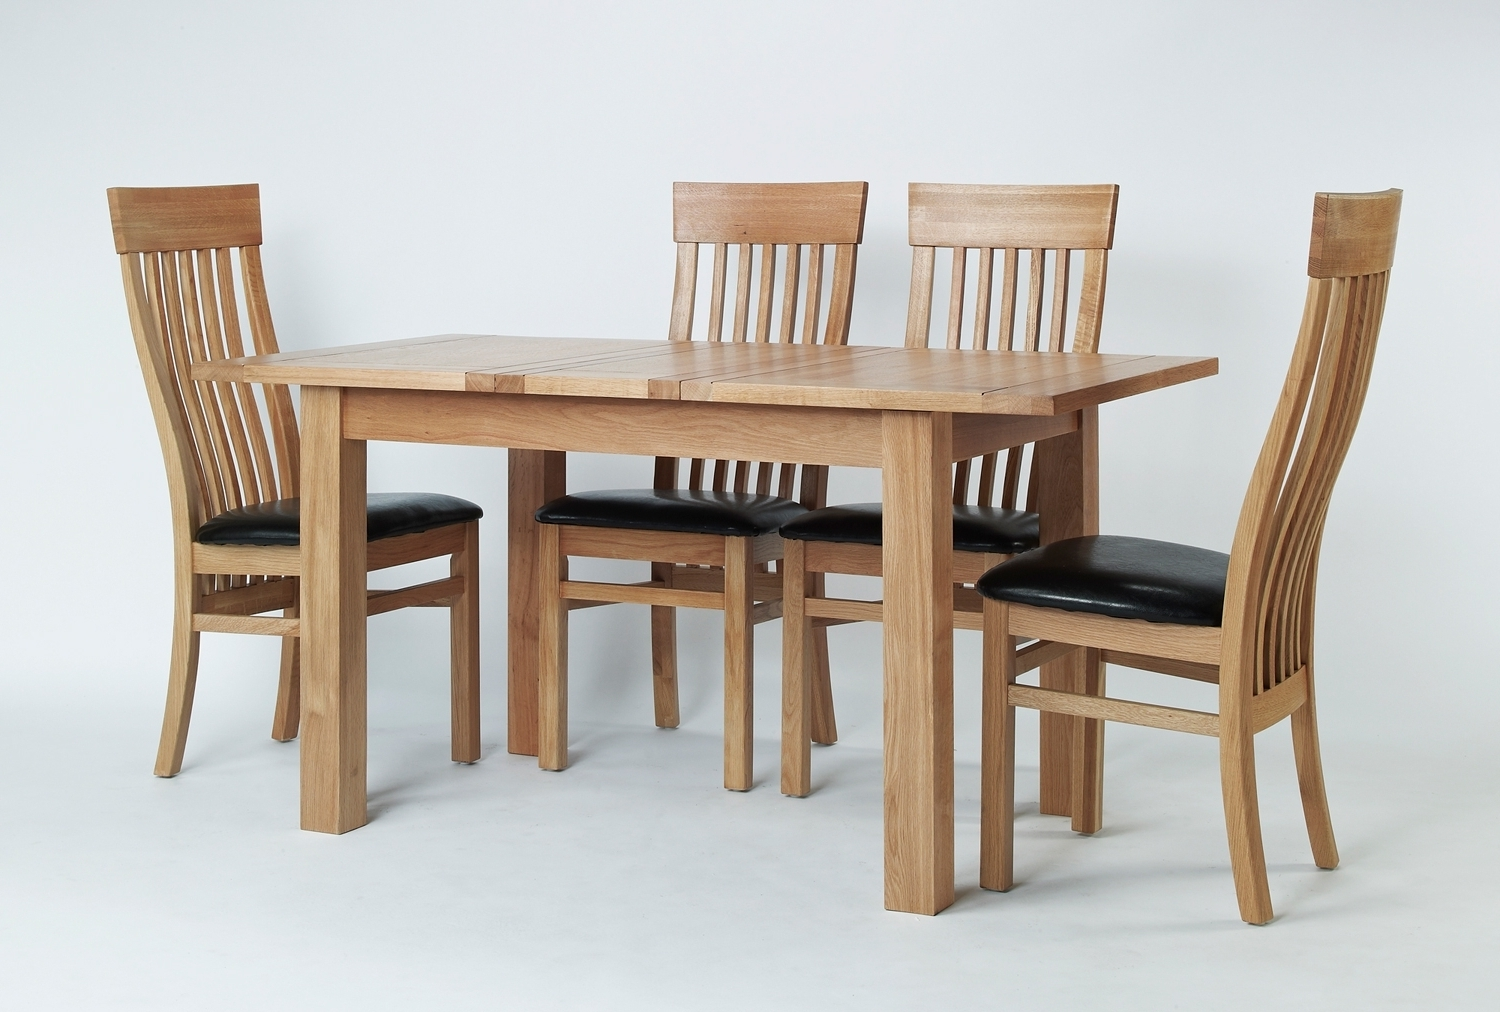 Small Extending Dining Tables And 4 Chairs Intended For Best And Newest Sherwood Oak Small Extending Dining Table 4 Or 6, Oak Extending (View 18 of 25)